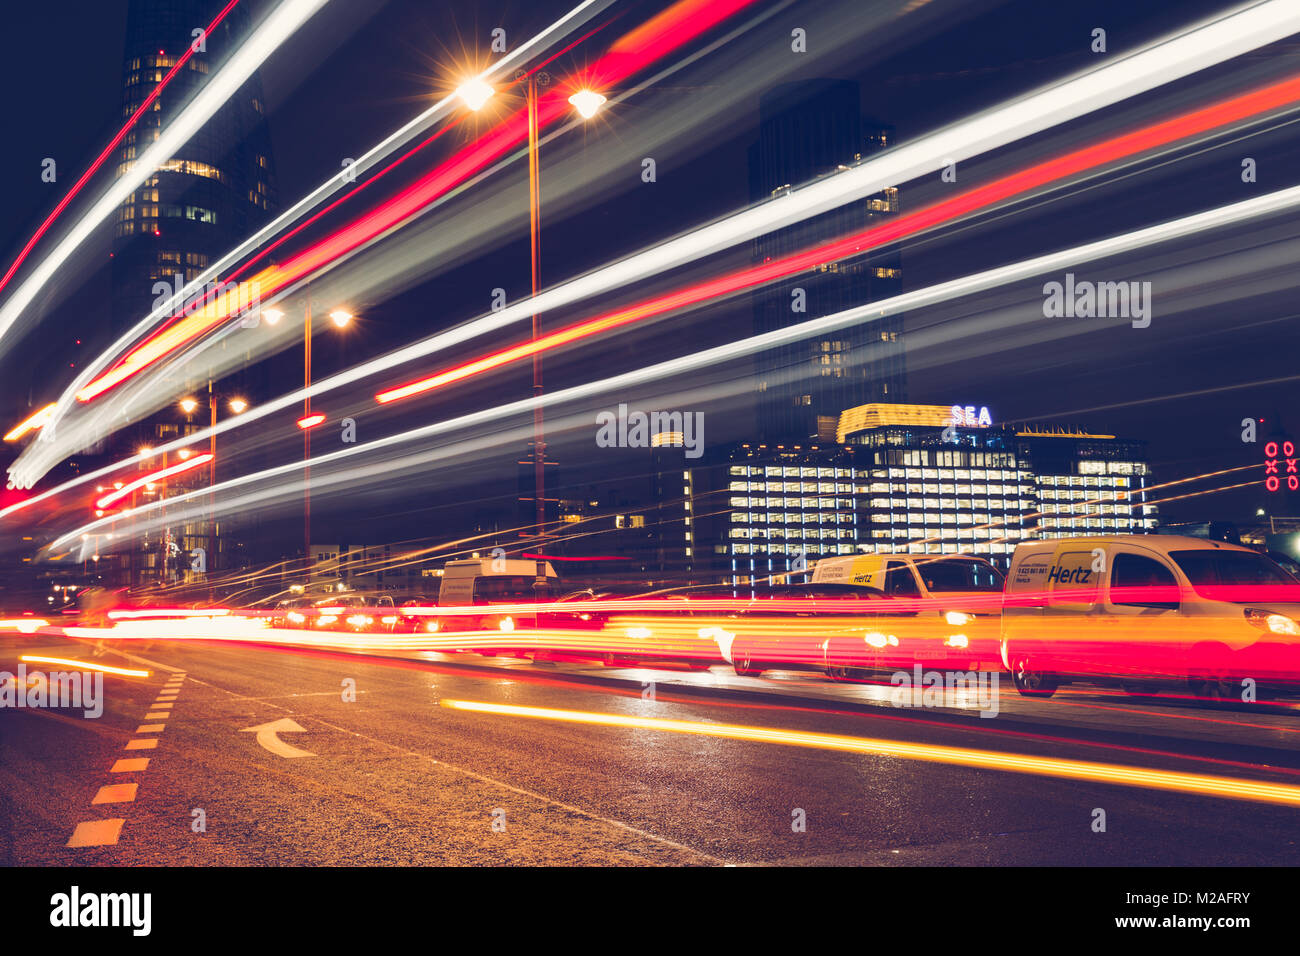 Red Car Moving Fast Stock Photos Amp Red Car Moving Fast